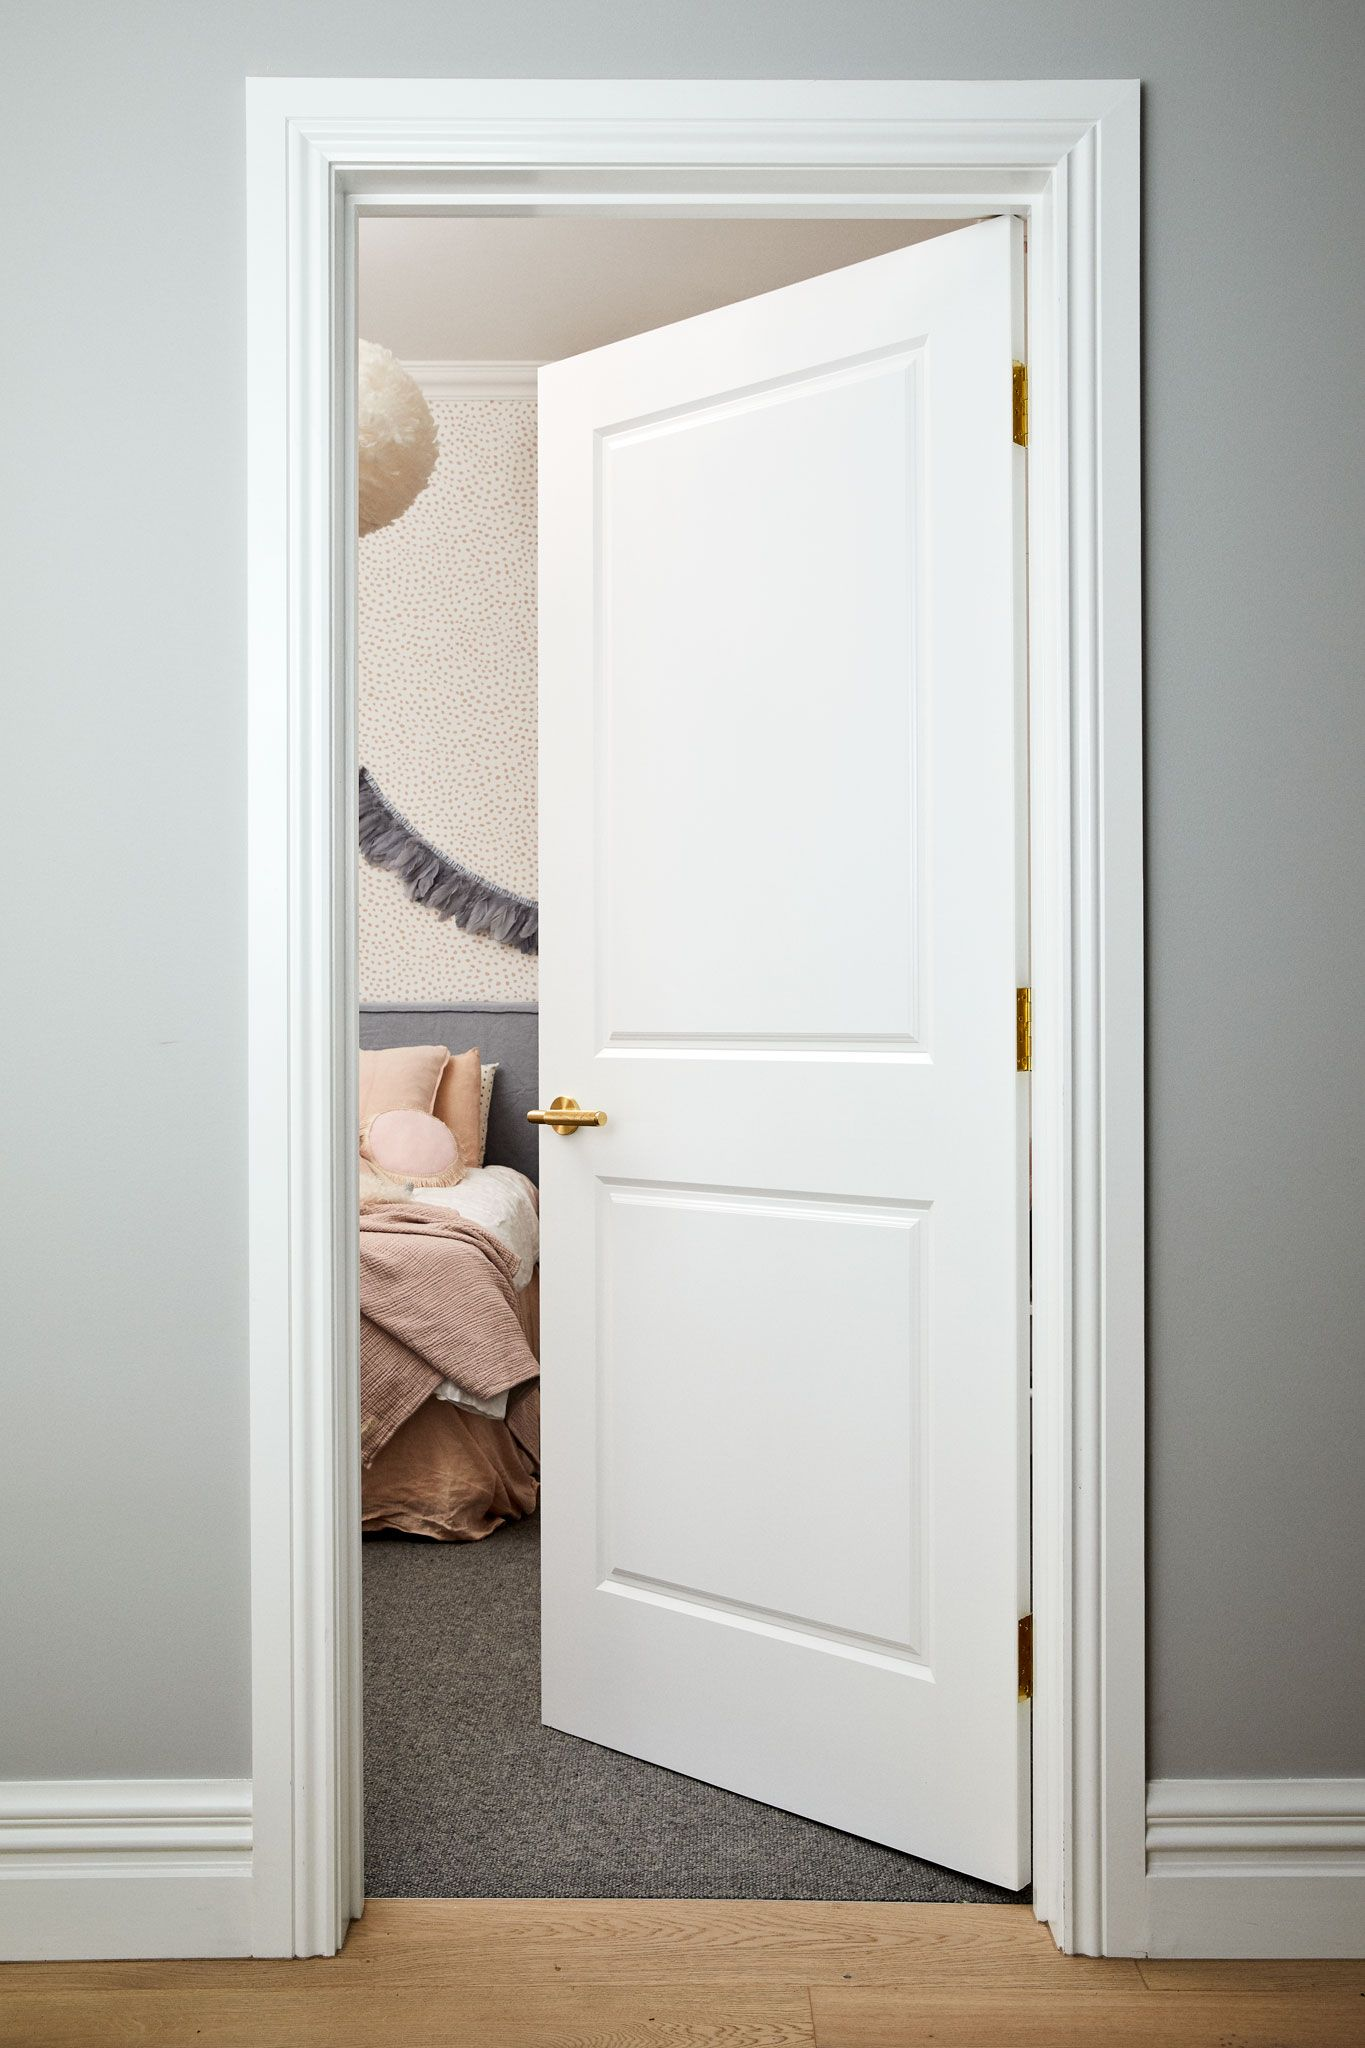 The Norsuhome Annabel S Bedroom Door Paint Dulux Tranquil